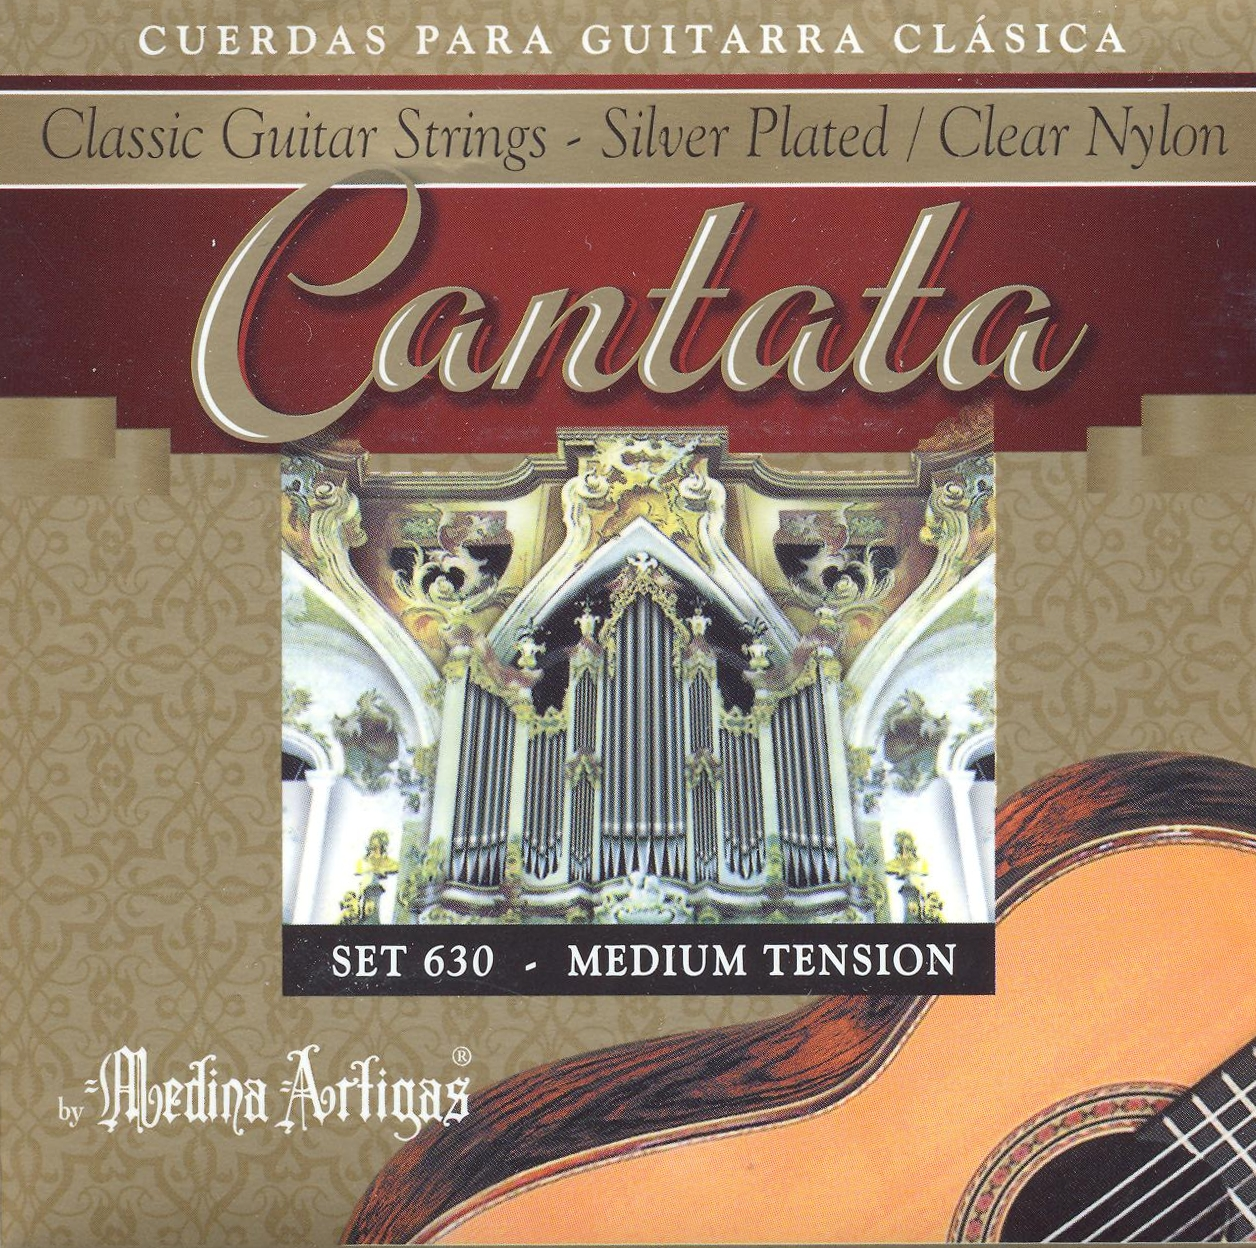 Medina Artigas 630 Cantata Konzertgitarre, medium